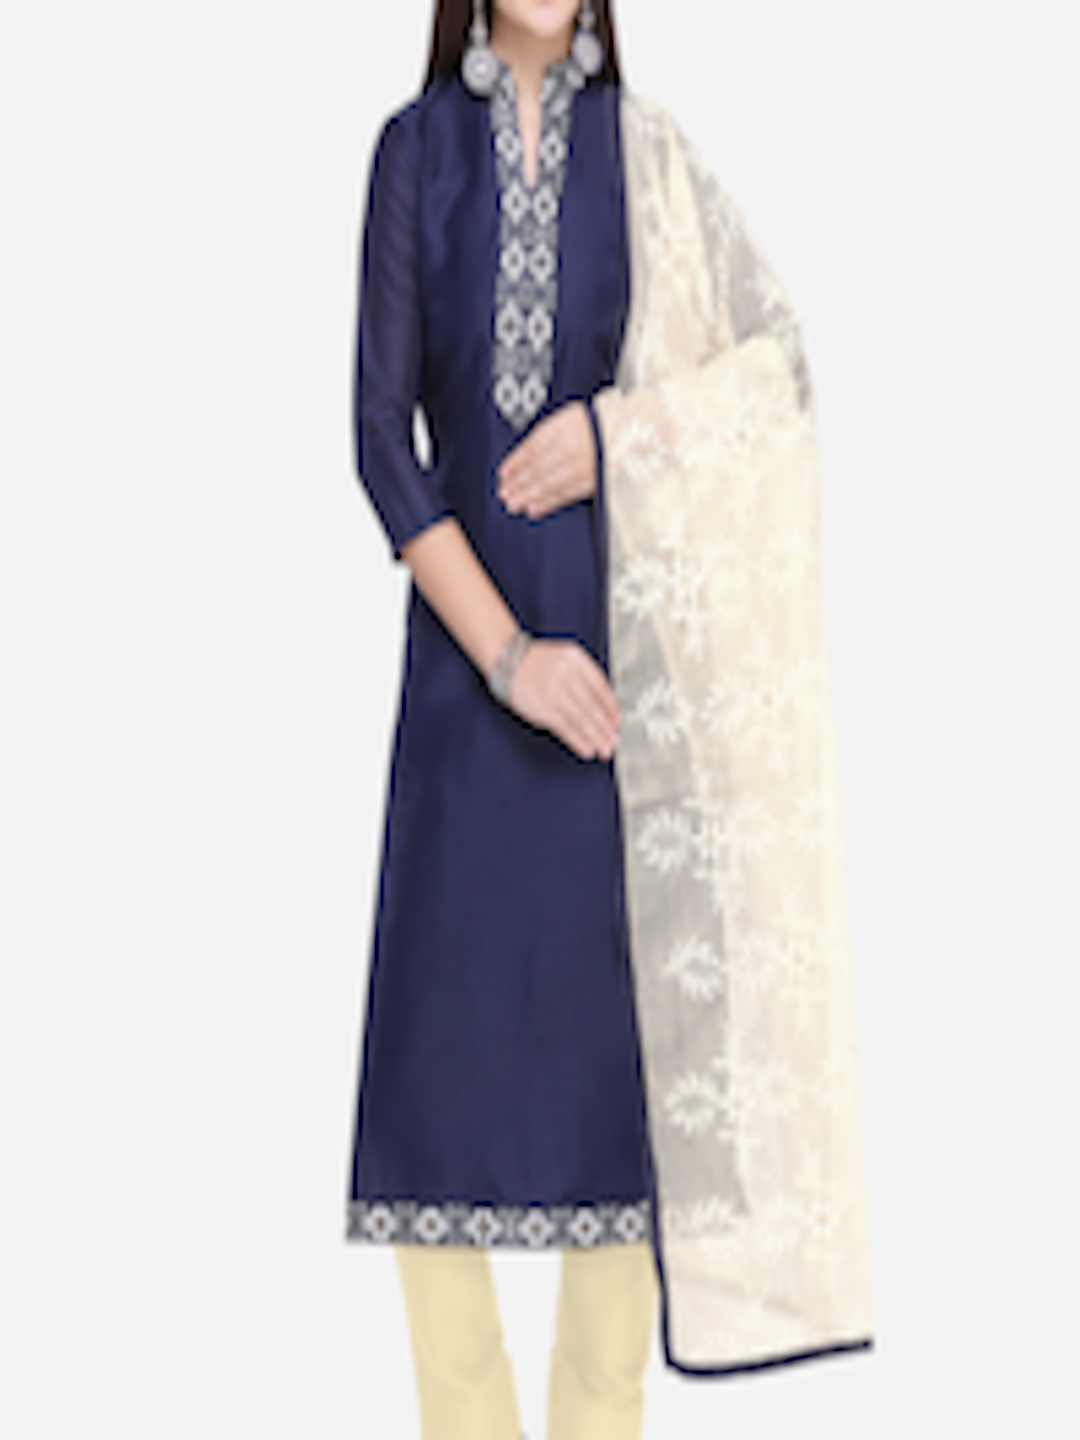 Buy Saree Mall Navy Blue   Cream Coloured Cotton Blend Semi Stitched Dress  Material - Dress Material for Women 7571109  83d20e527